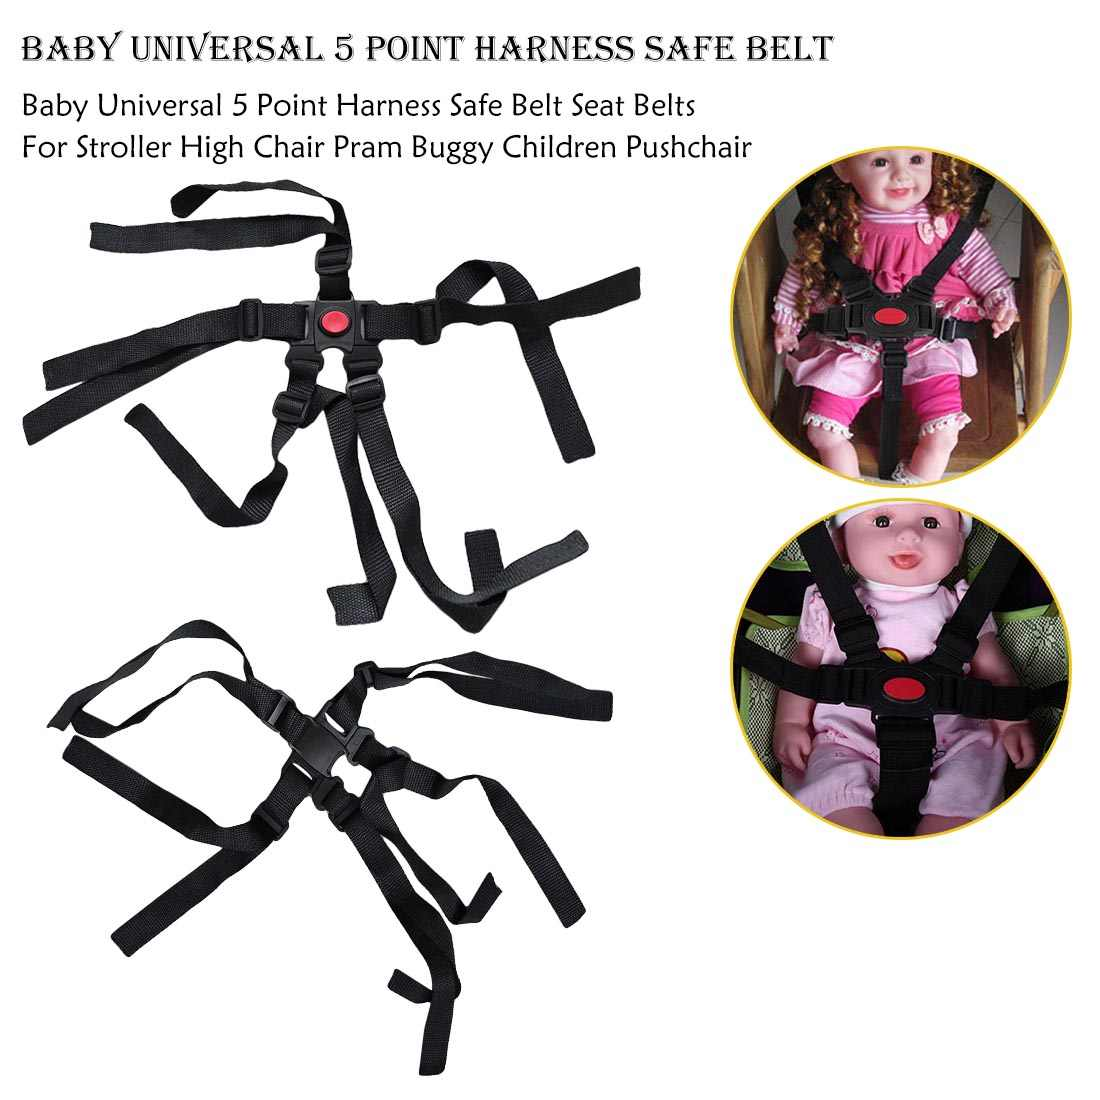 Baby Universal 5 Point Harness Safe Belt Seat Stroller Accessories  Belts For Stroller High Chair Pushchair  Safe Easy Use